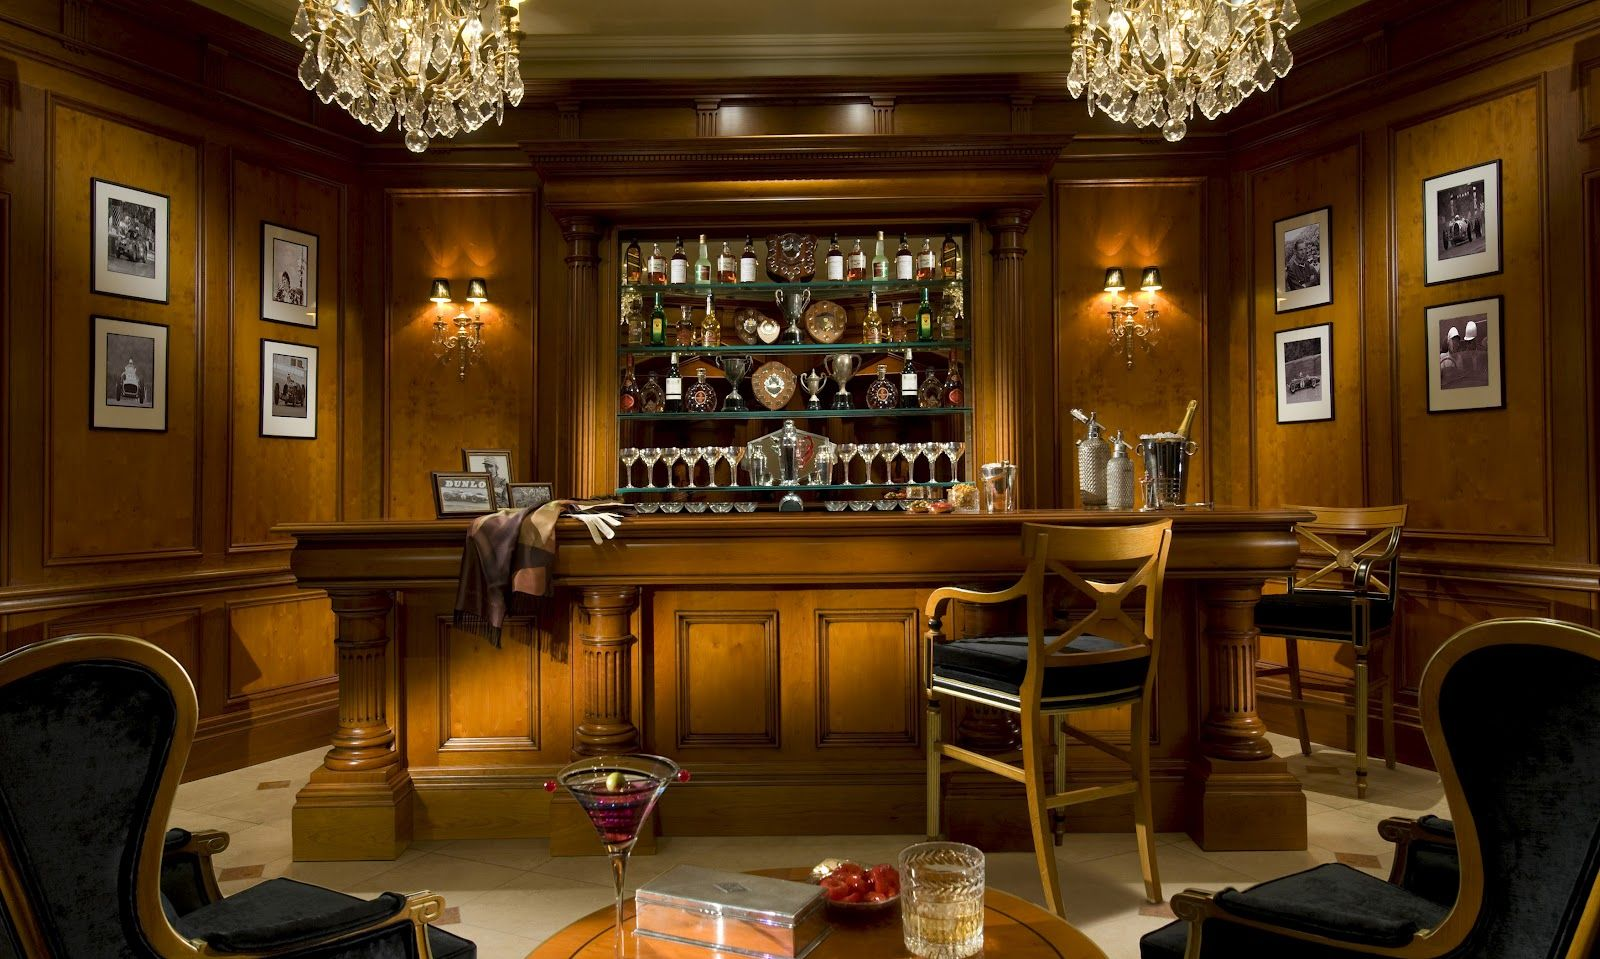 Luxury home bars design yew antique luster paneling and bar with mirror detail home bar - Luxury home bar designs ...